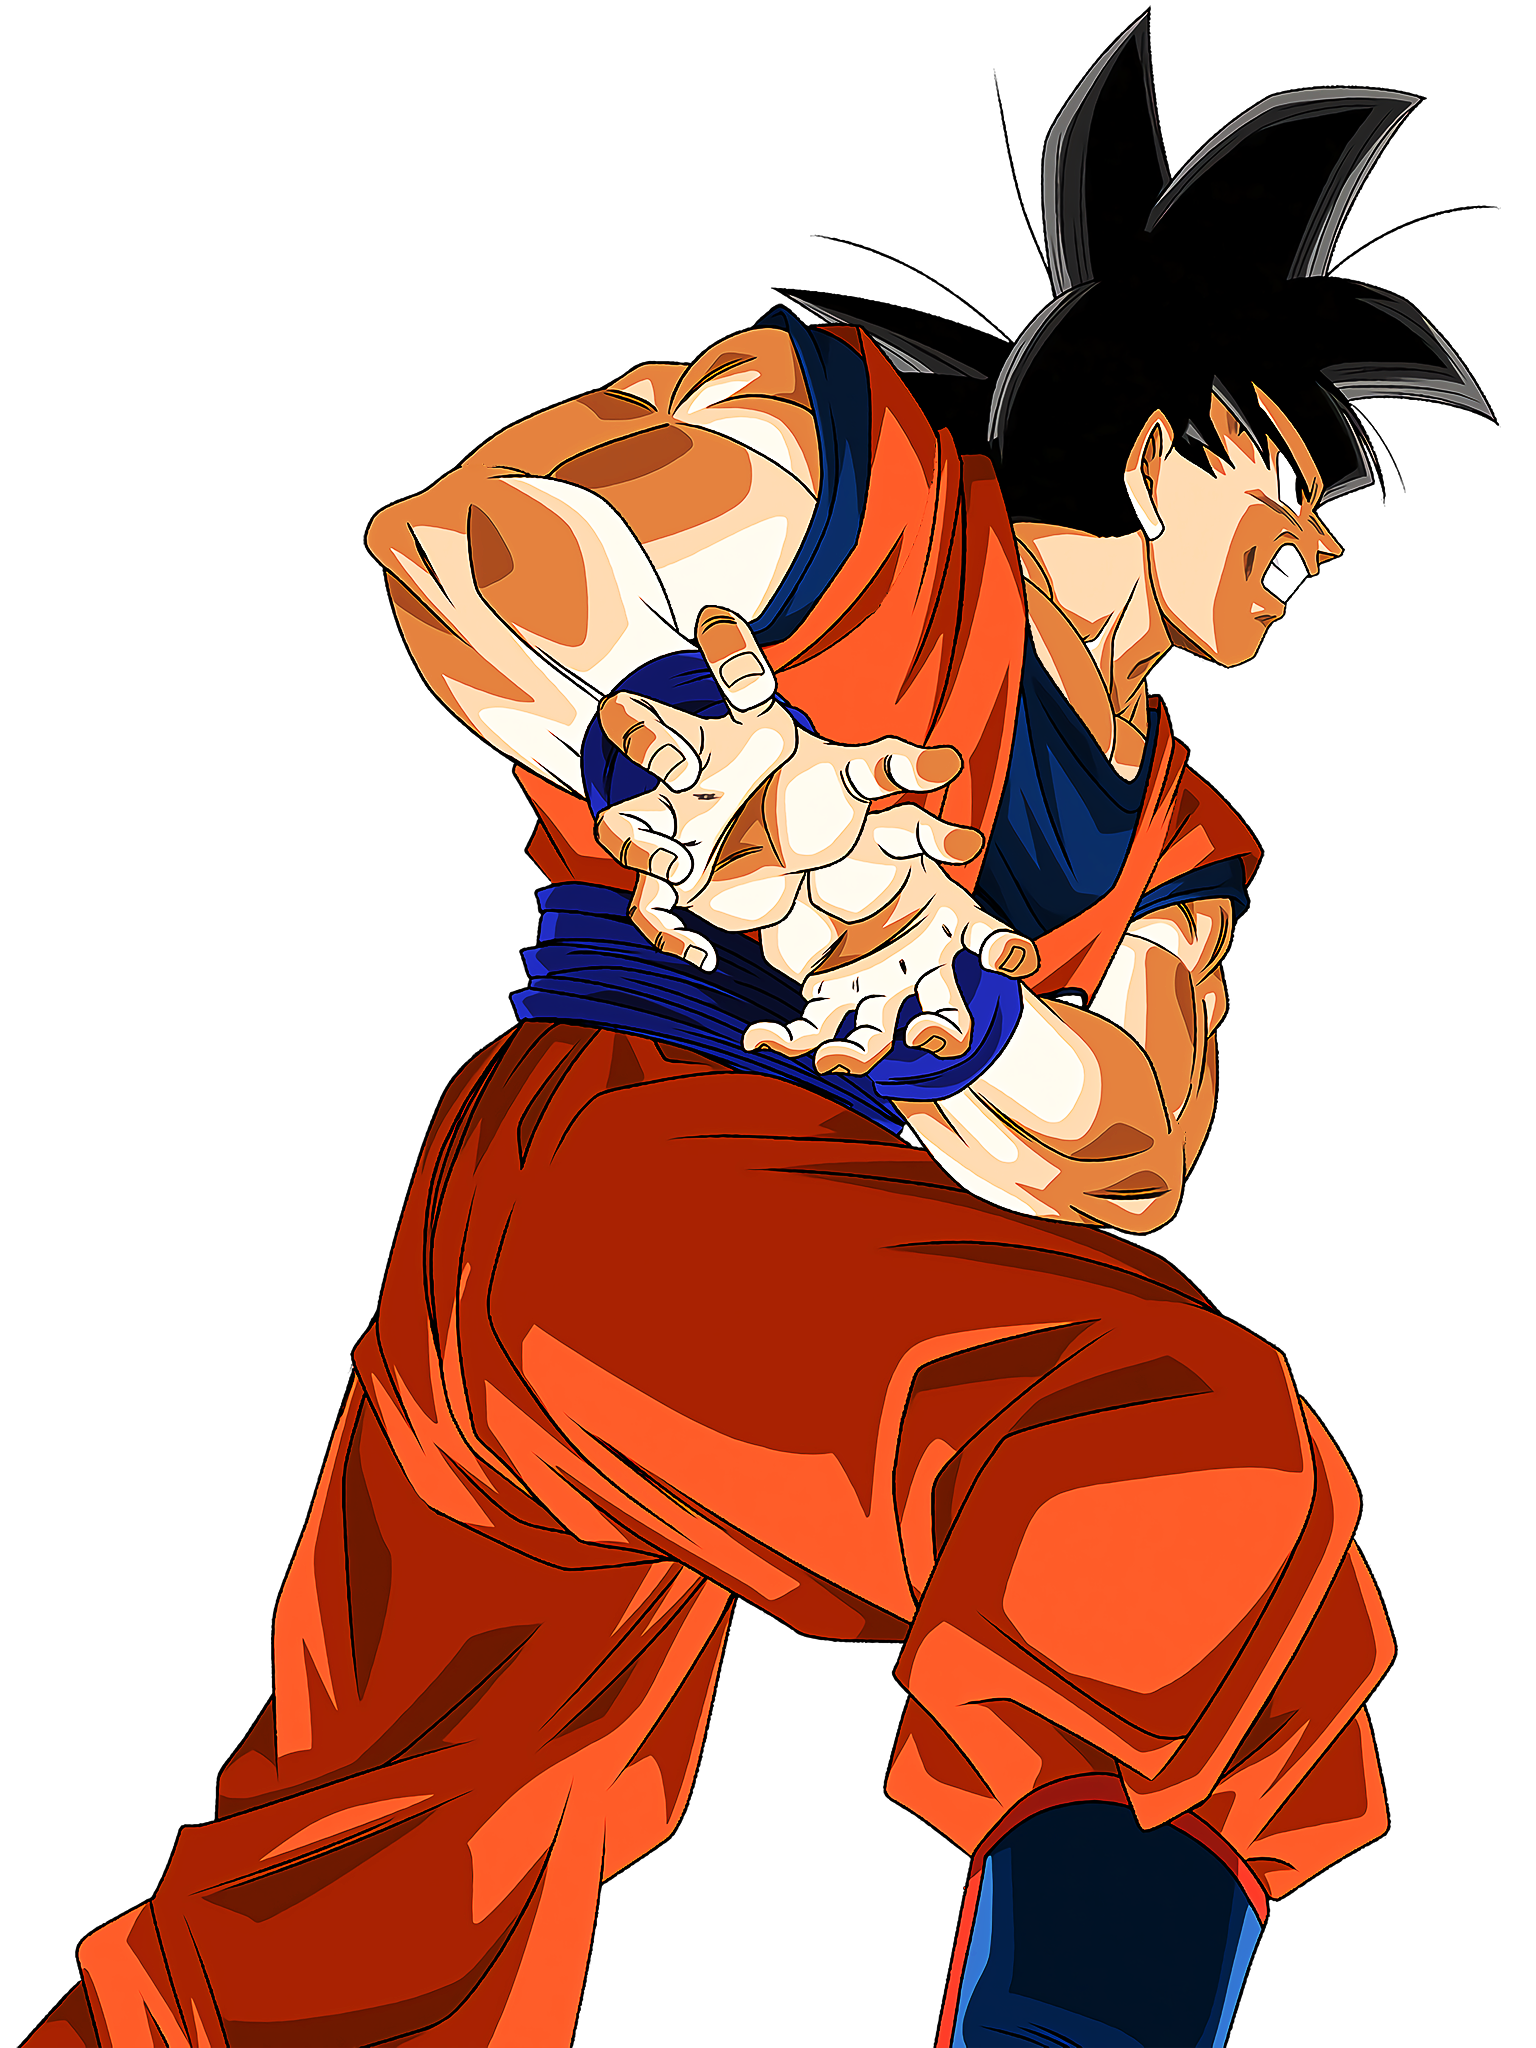 Goku Base Form Pull Summon Animation Render (Dragon Ball Z Dokkan Battle) .png